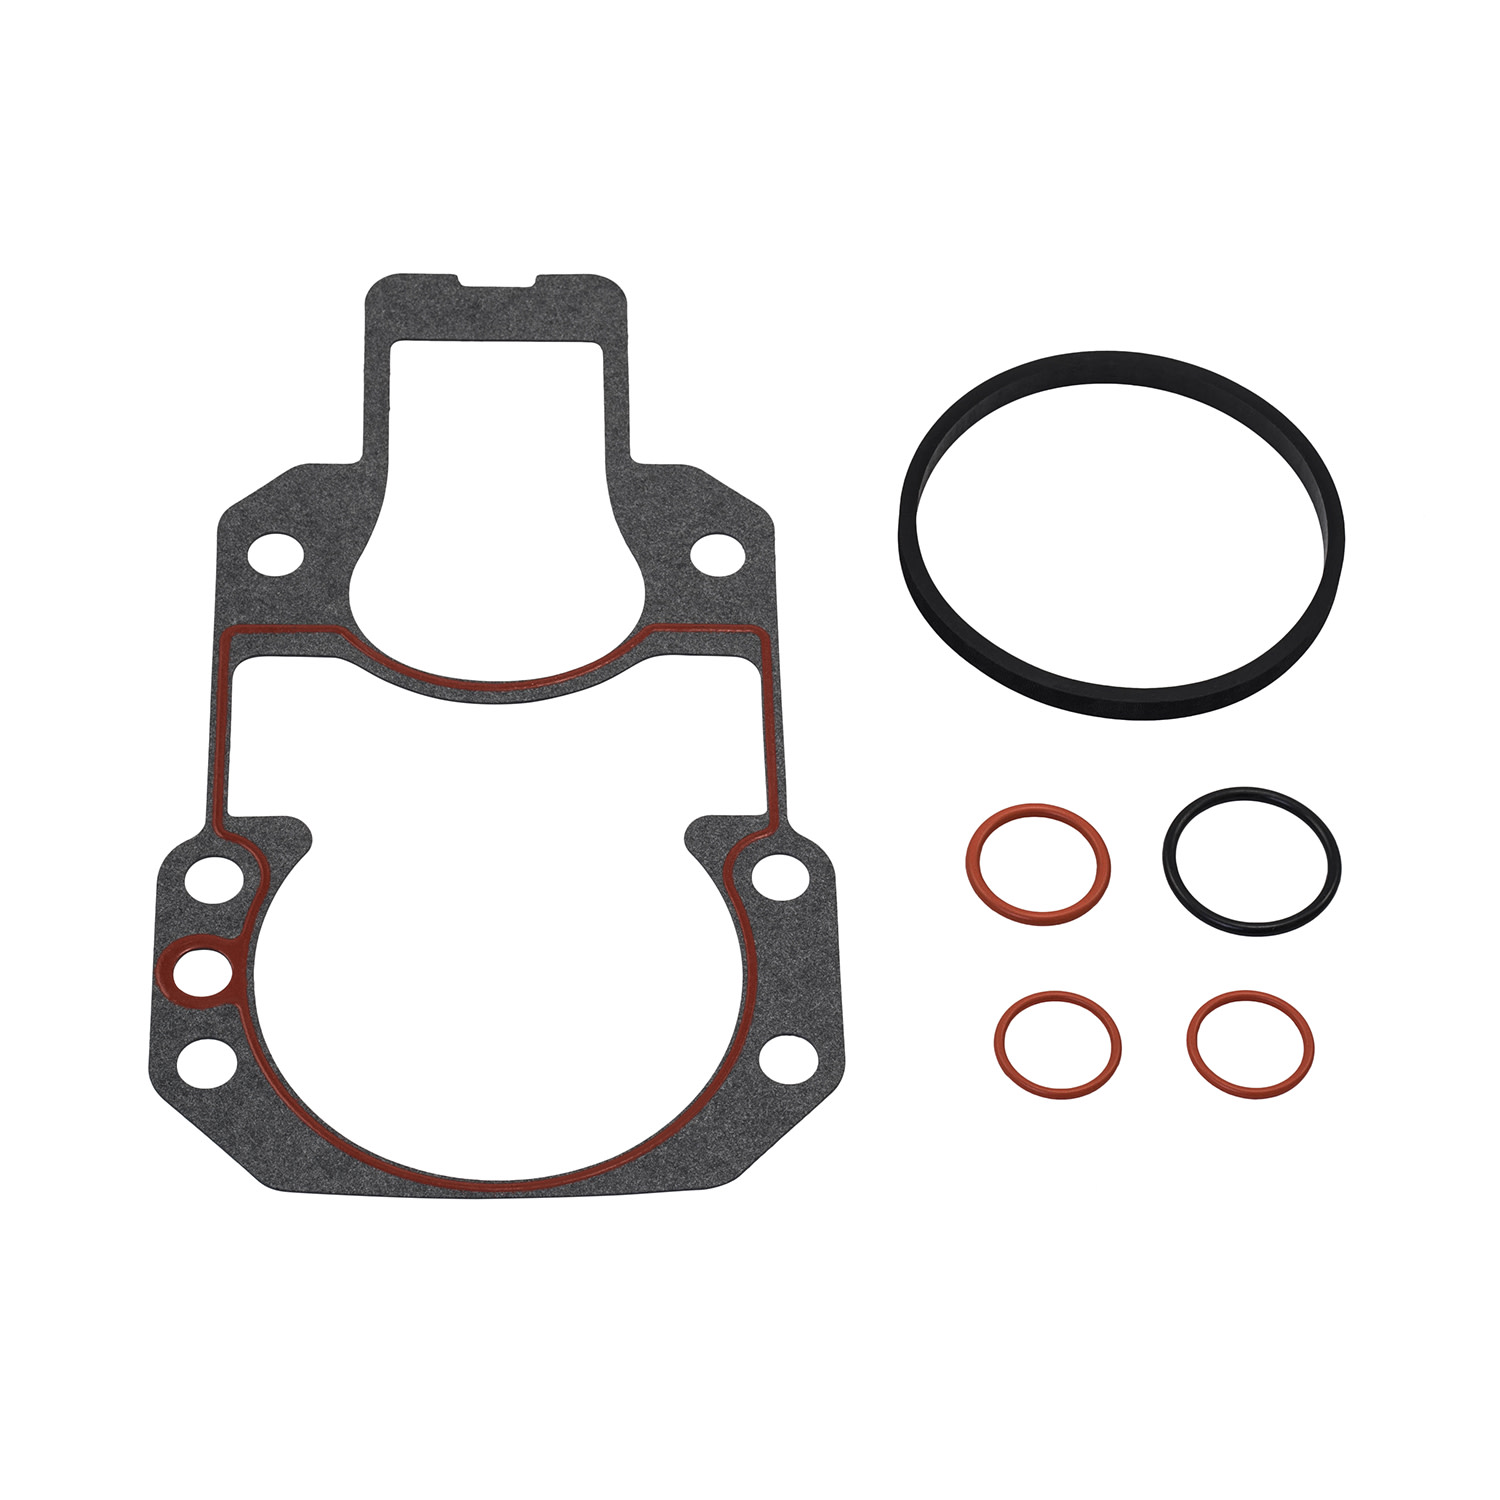 Outdrive Mounting Gasket Kit For Alpha 1 Alpha 1 Gen ll  27-94996T2  94996Q2